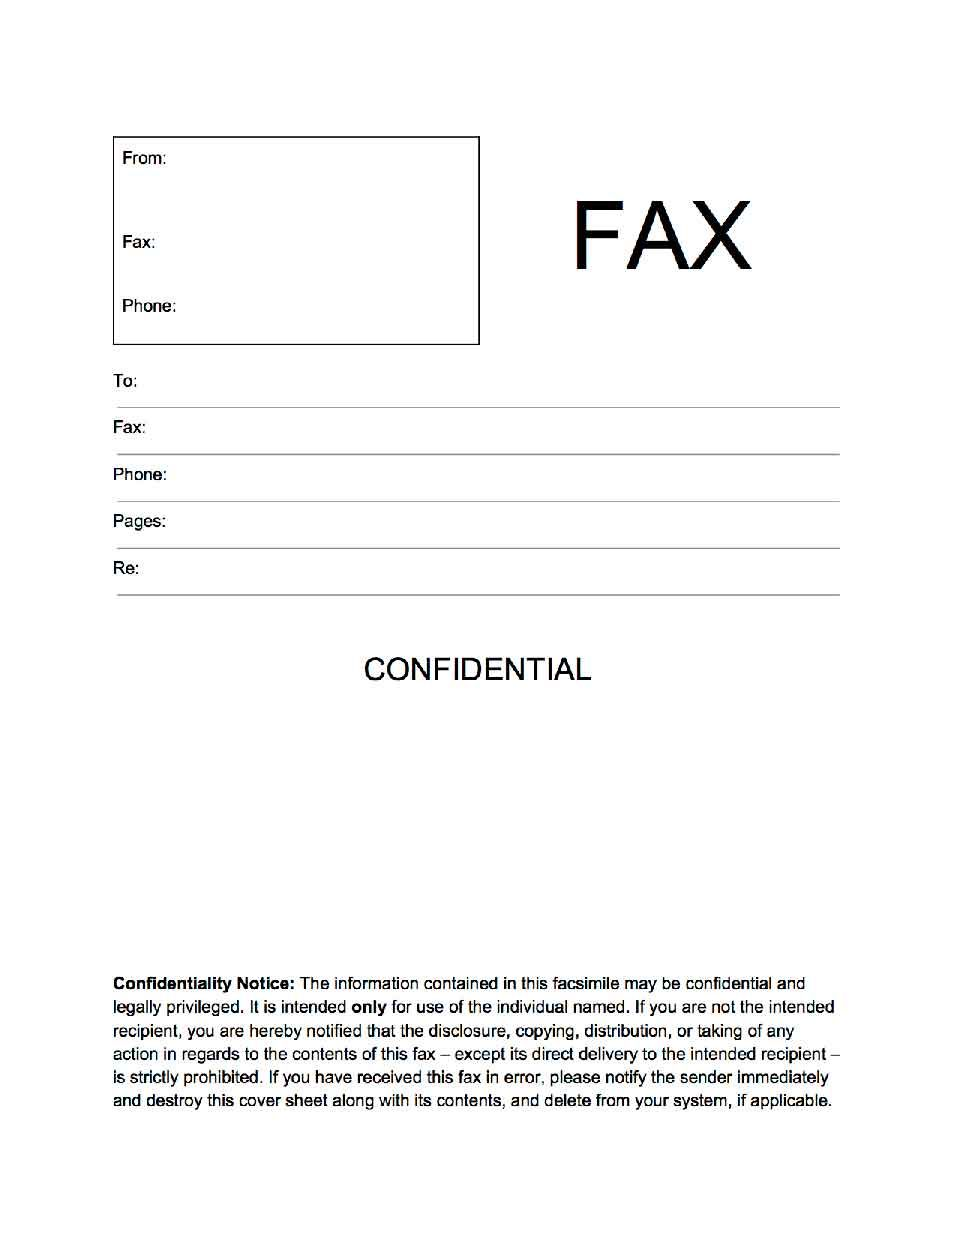 doc 447580 fax covers fax cover sheet template printable 1000 images about popularfaxcoversheets fax covers